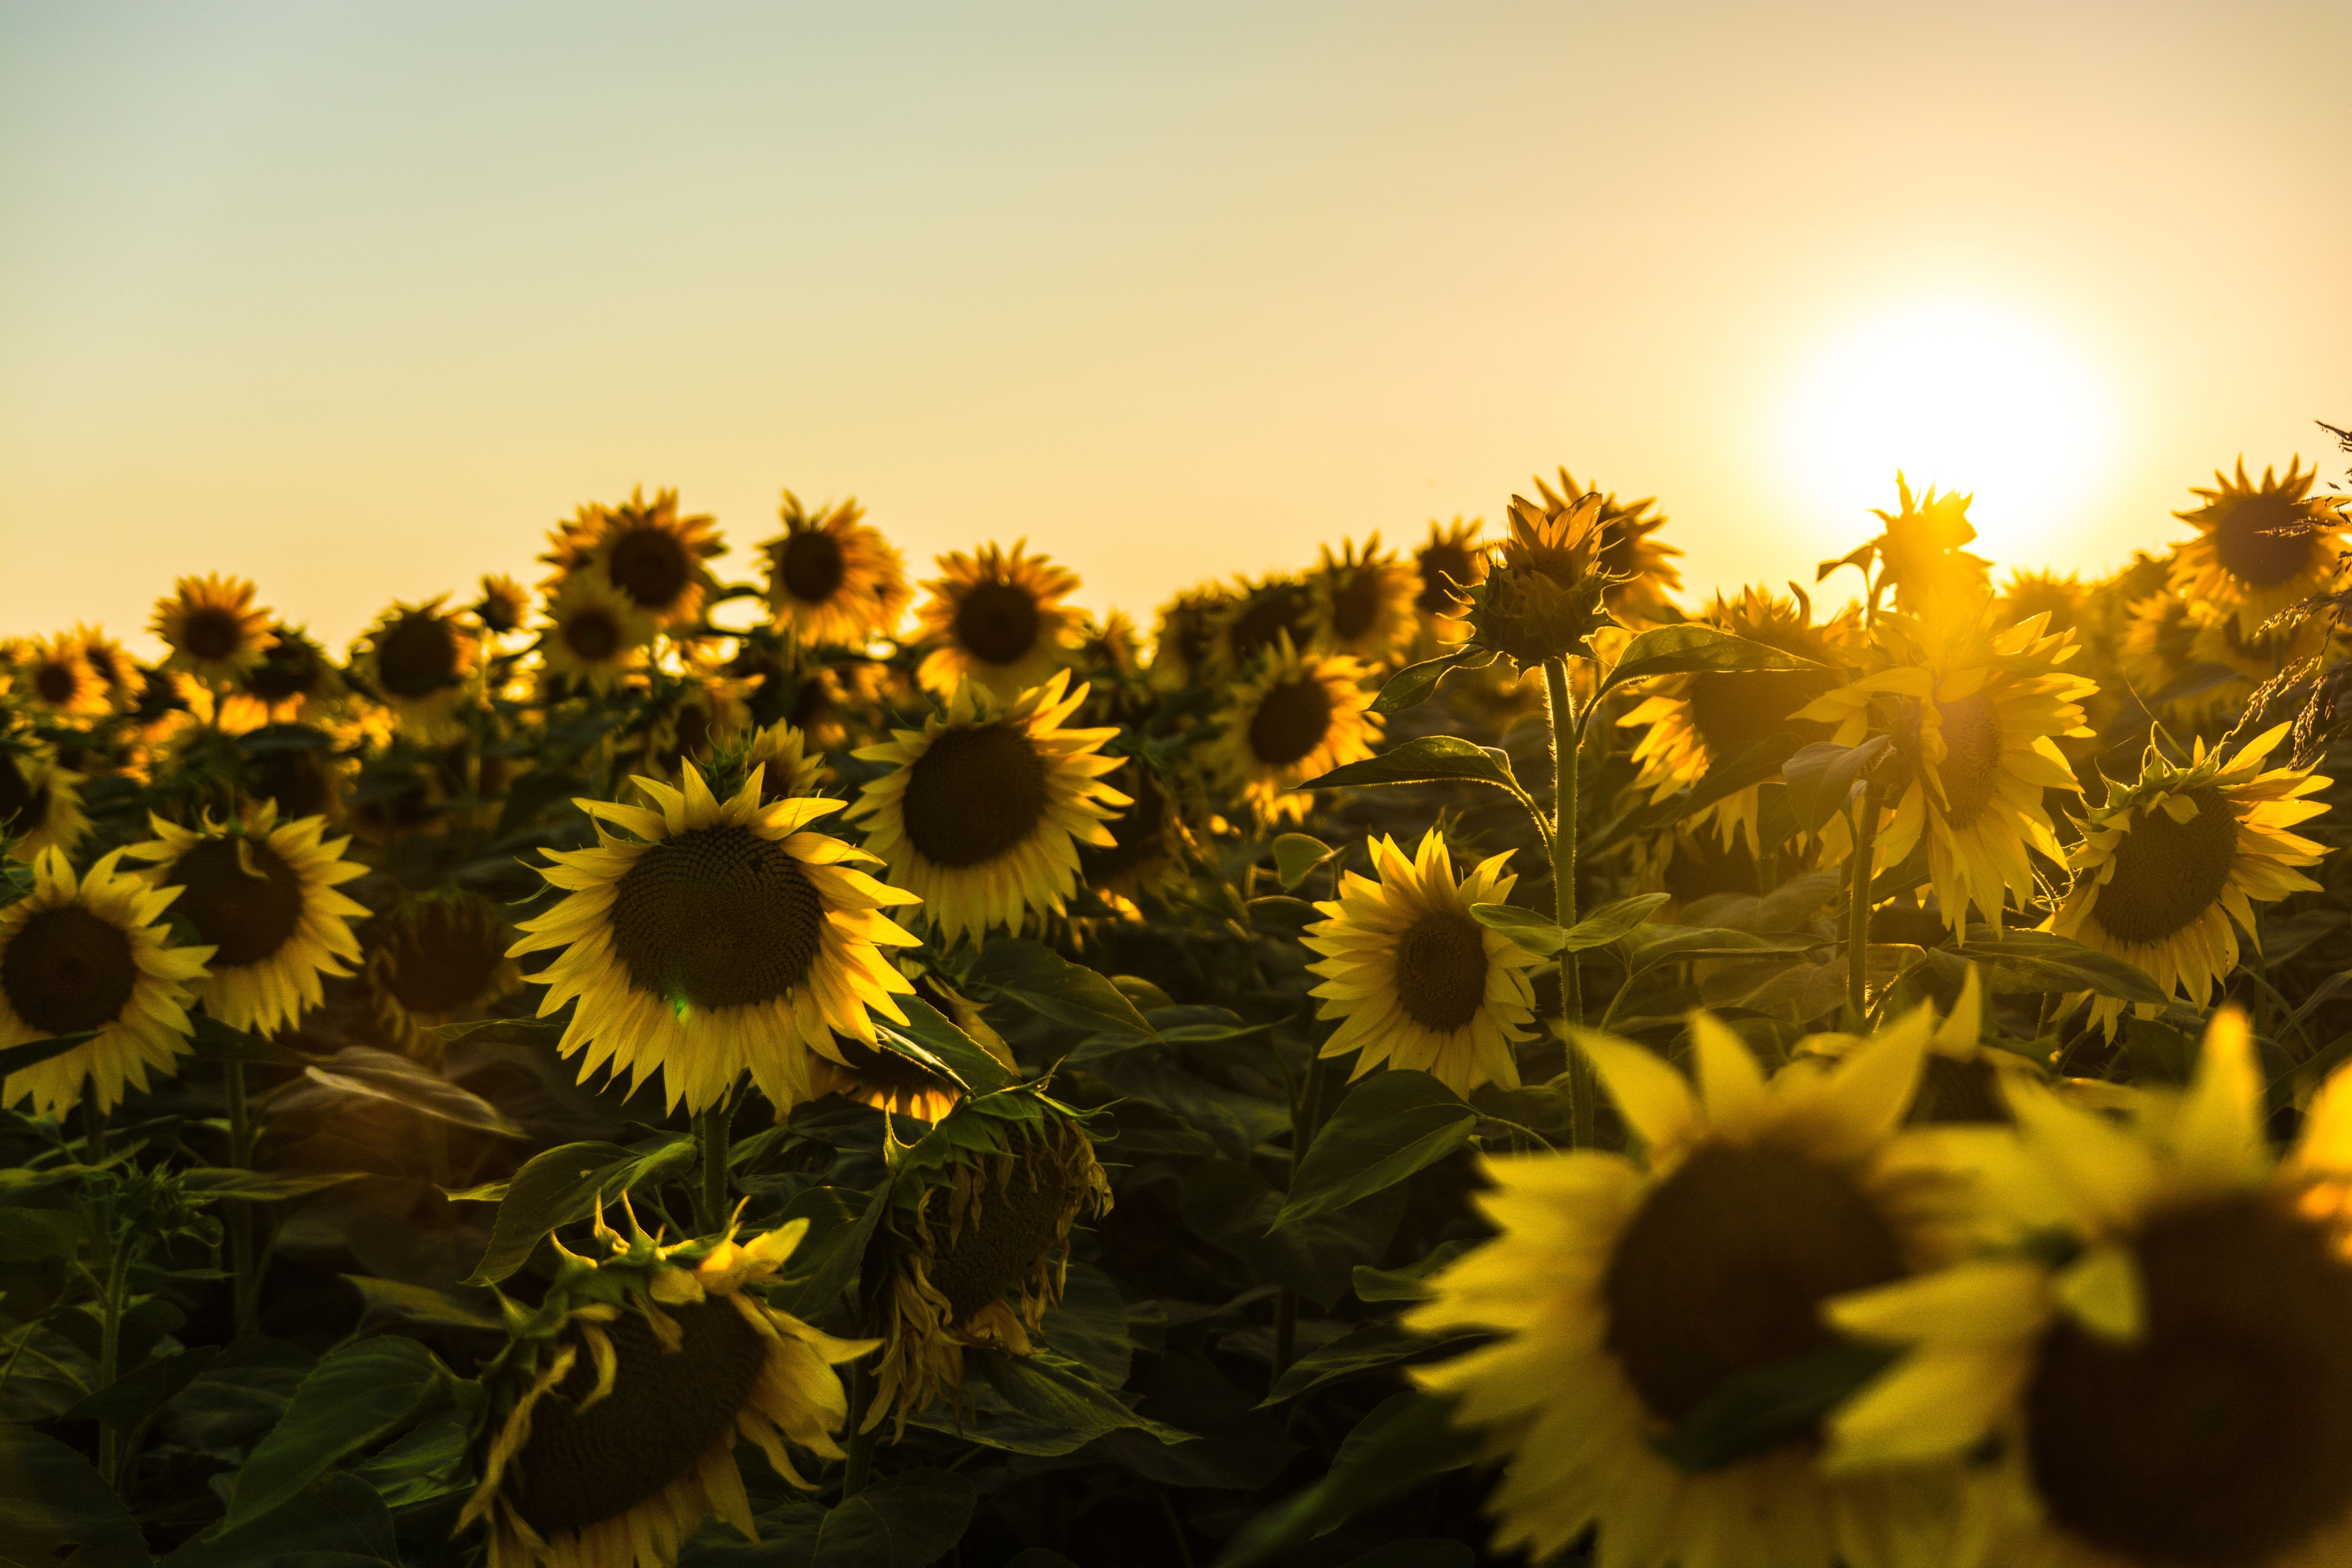 You Probably Already Knew That Sunflowers Follow The Sun However Although Sunflowers And Solar Panels B Sunflower Pictures Sunflower Fields Nature Pictures